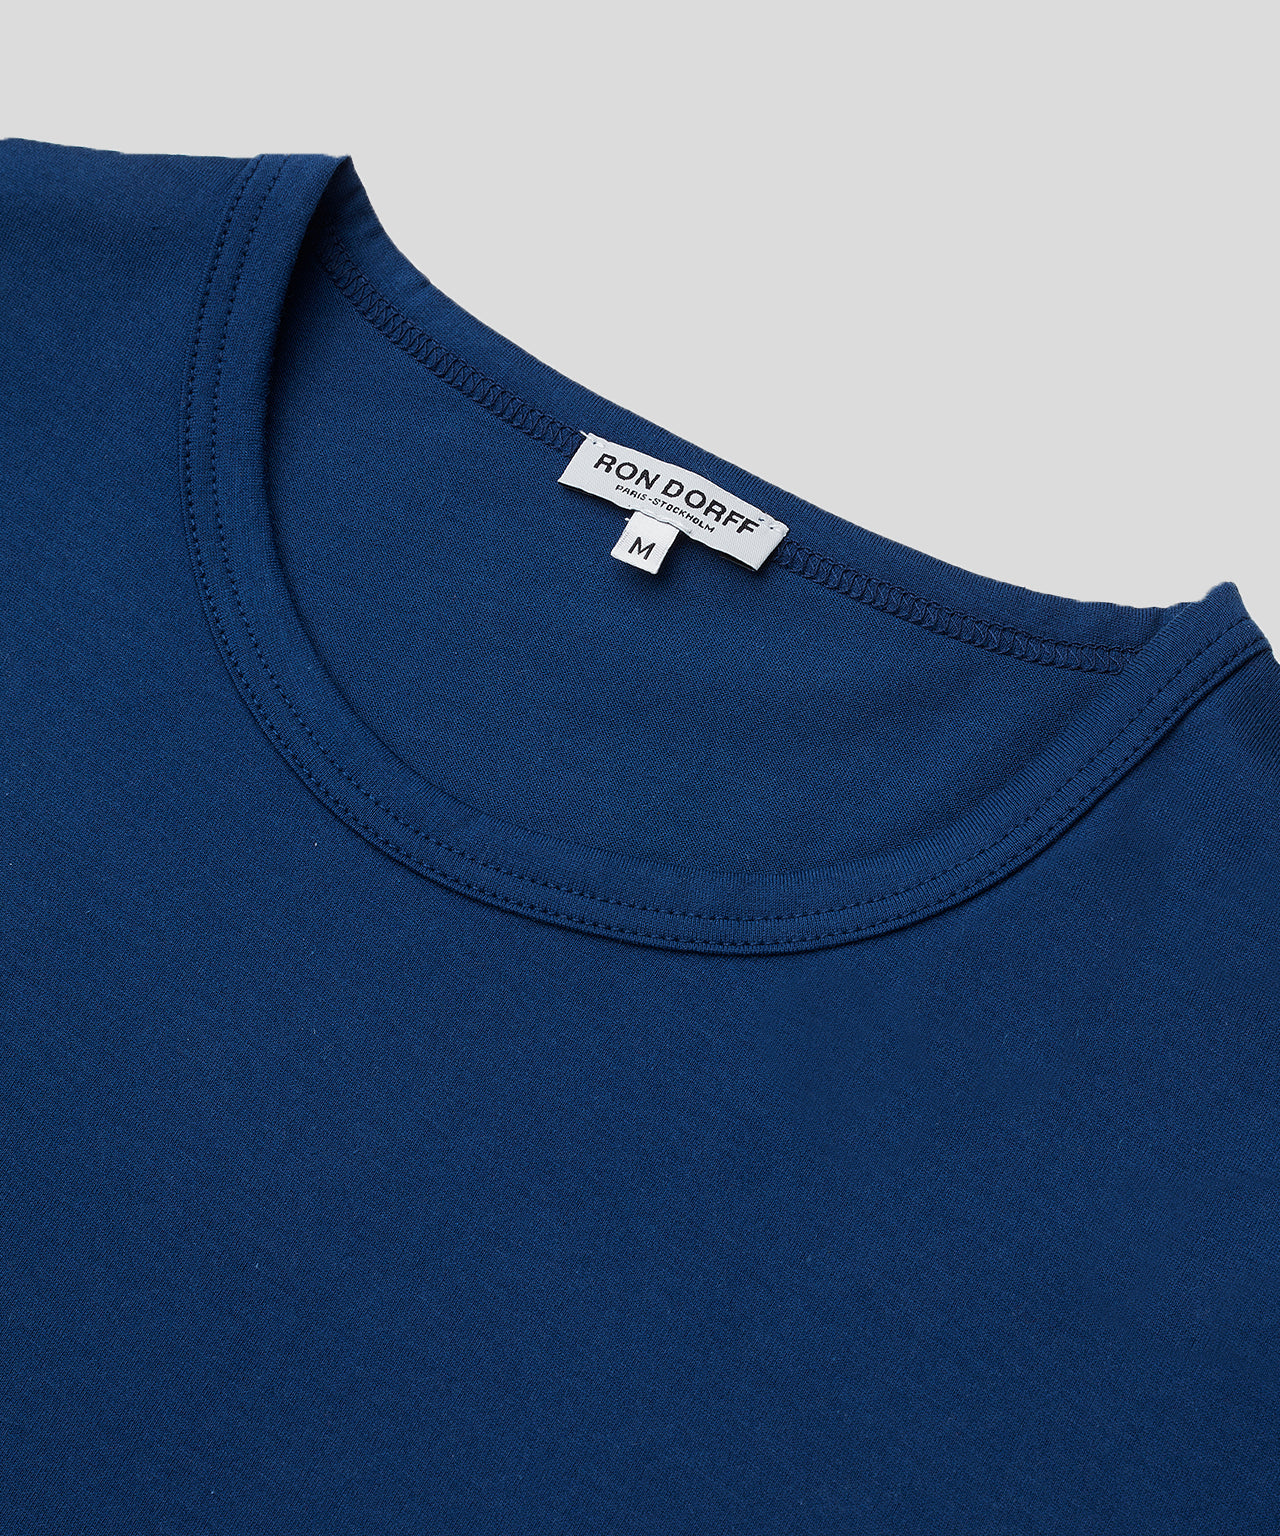 T-Shirt Eyelet Edition His For Her - viking blue